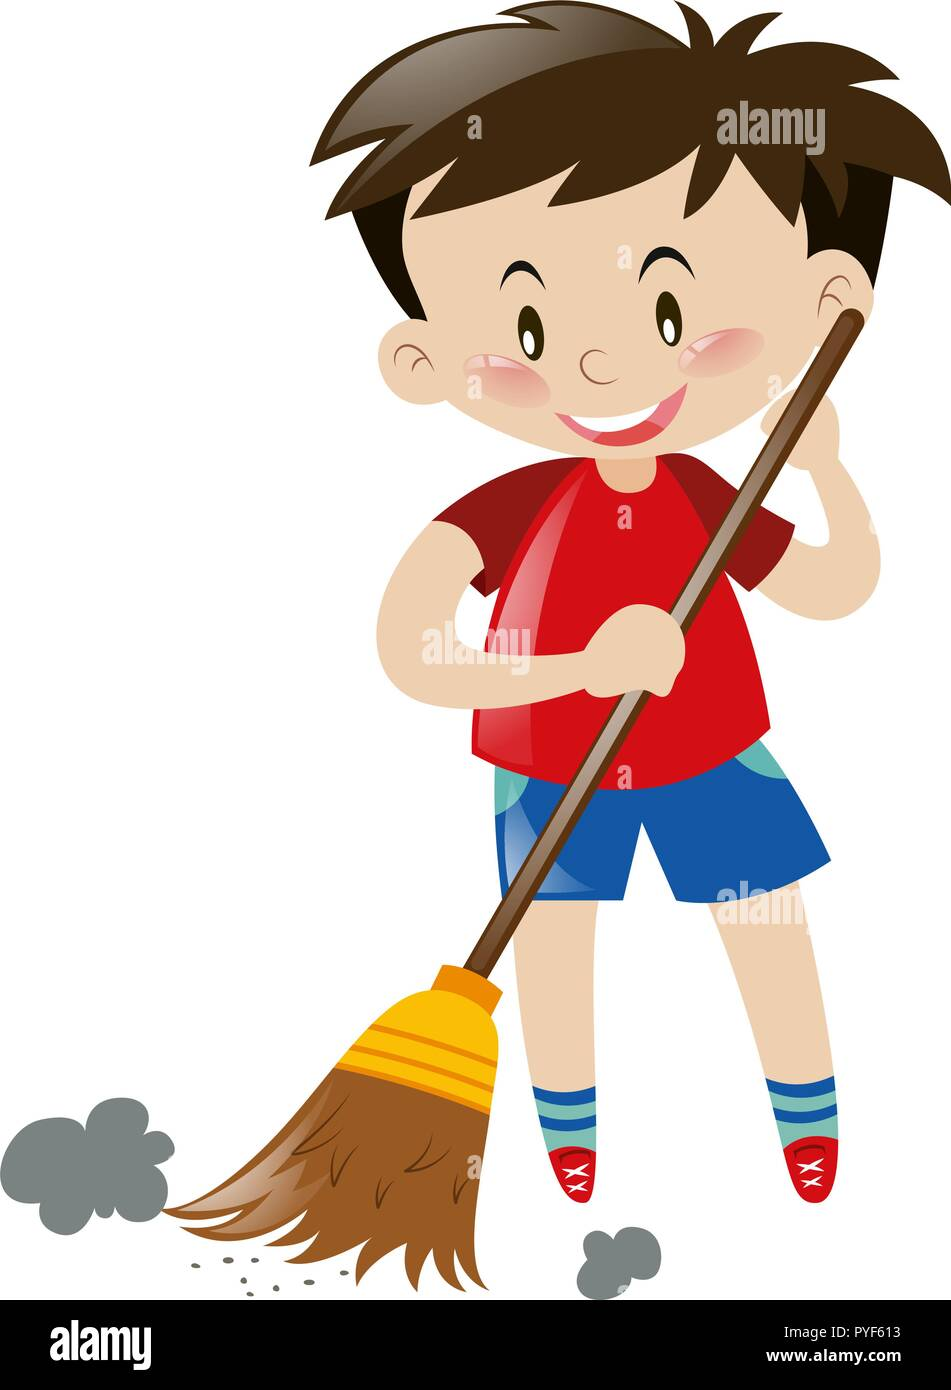 boy sweeping floor with broom illustration stock vector image art alamy https www alamy com boy sweeping floor with broom illustration image223454143 html